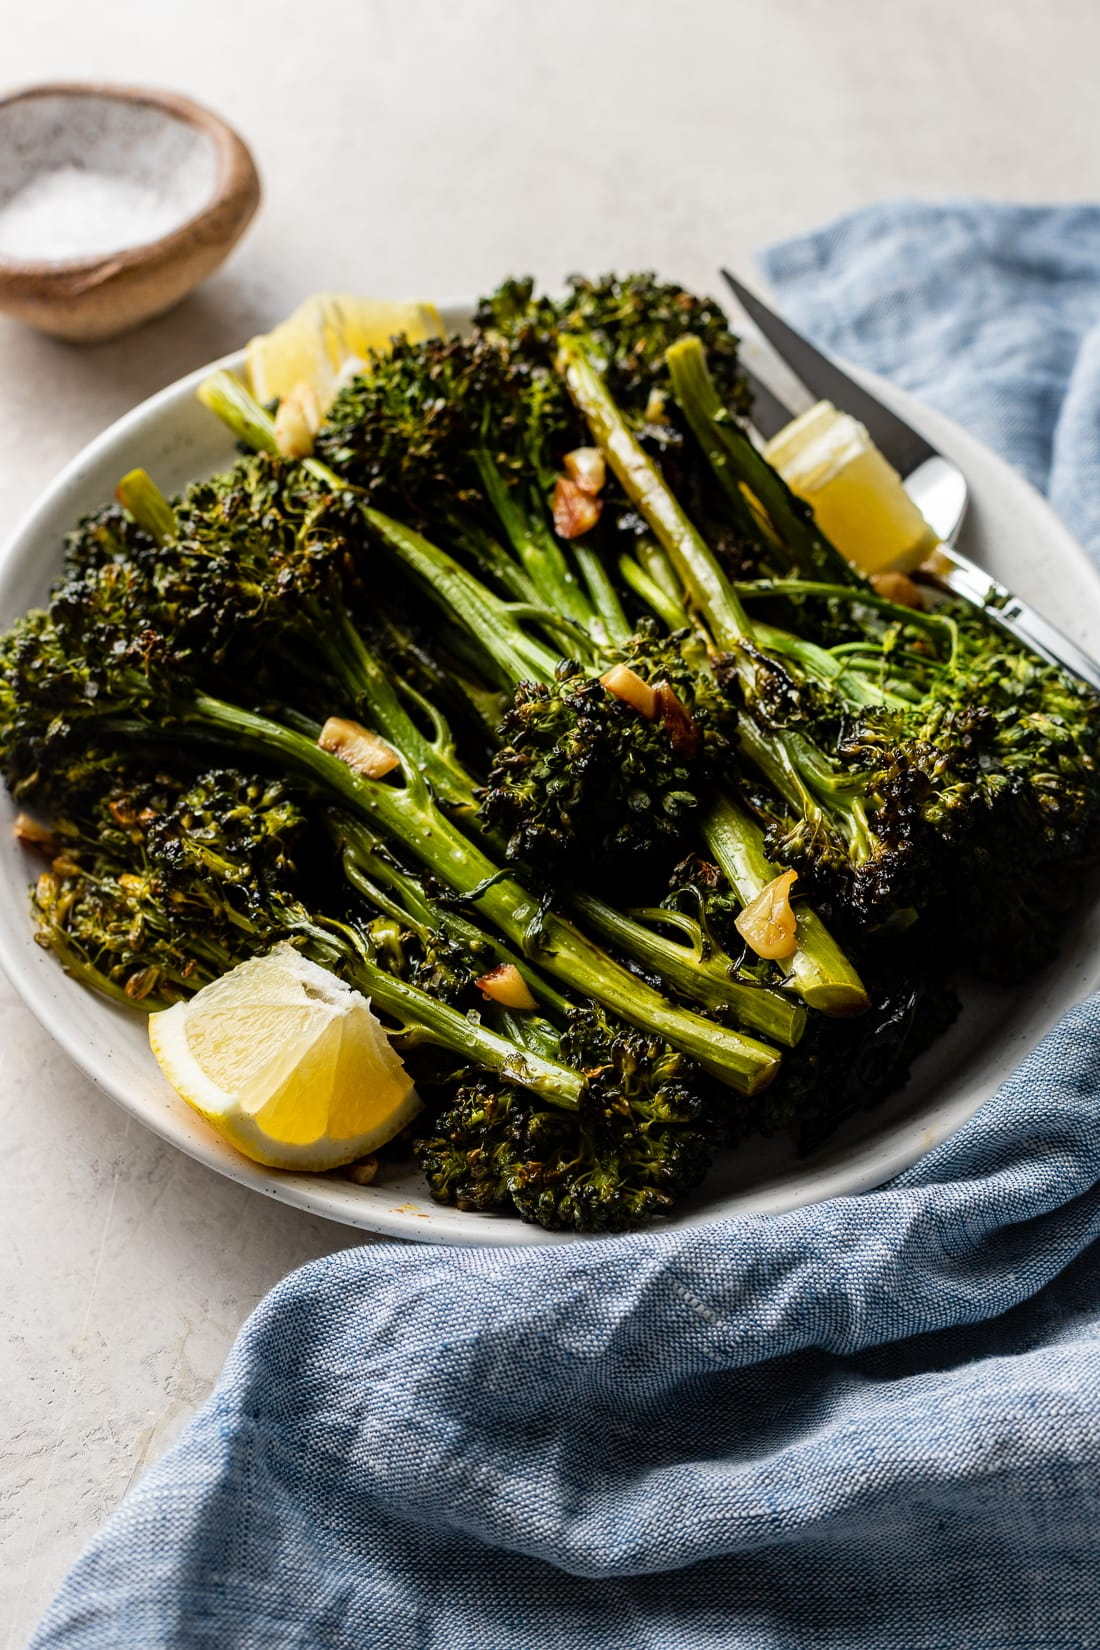 Close-up image of roasted broccolini tips, slightly charred.